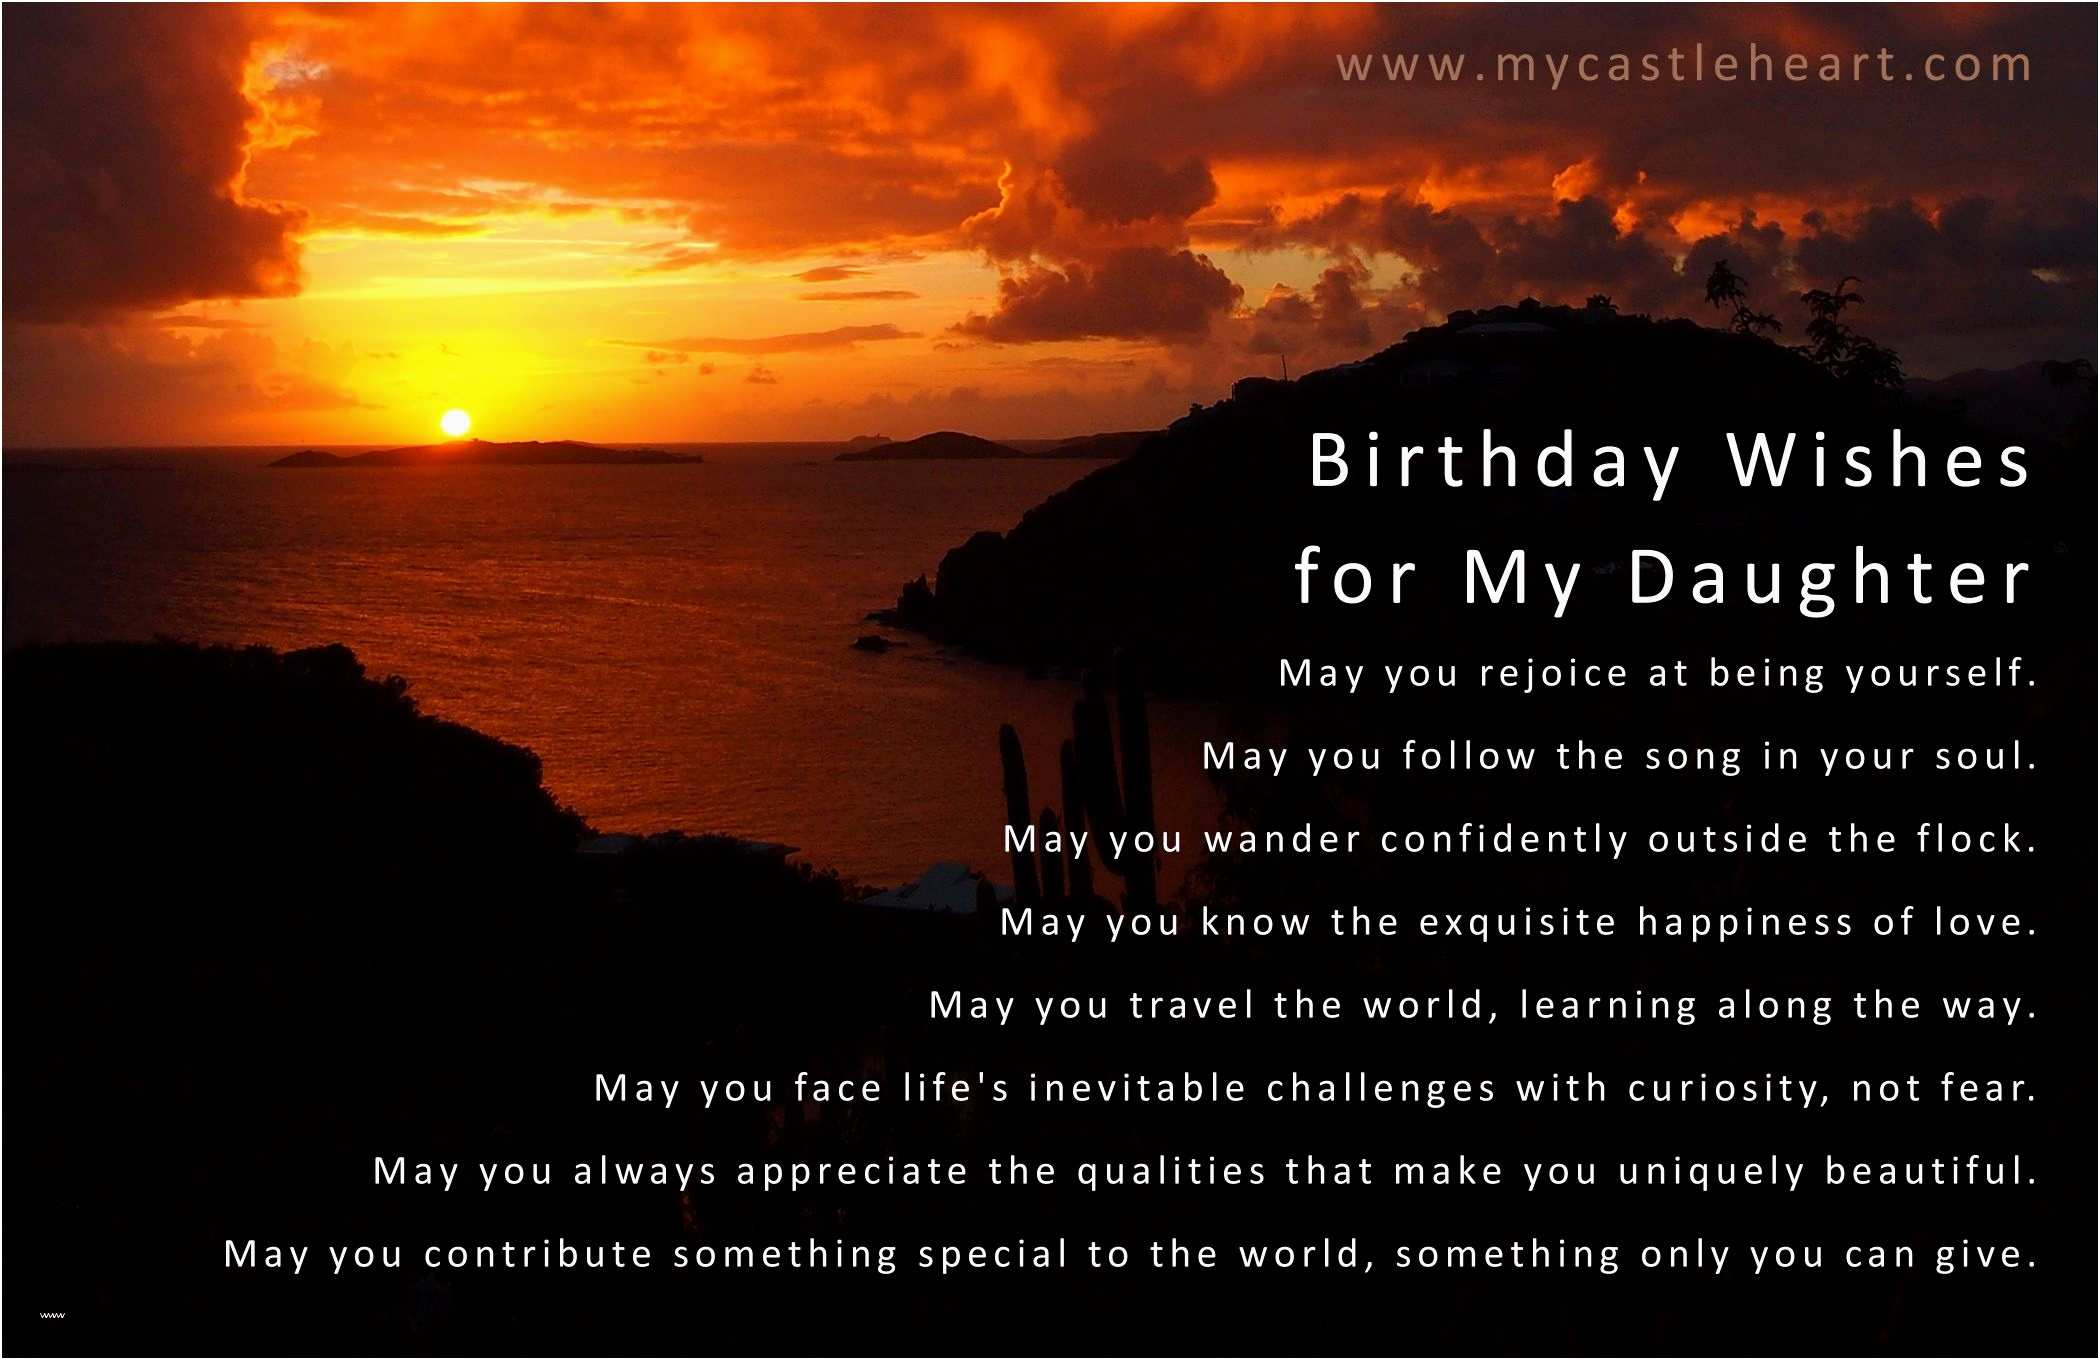 birthday message to my only daughter ; happy-birthday-image-with-message-awesome-birthday-wishes-for-my-daughter-of-happy-birthday-image-with-message